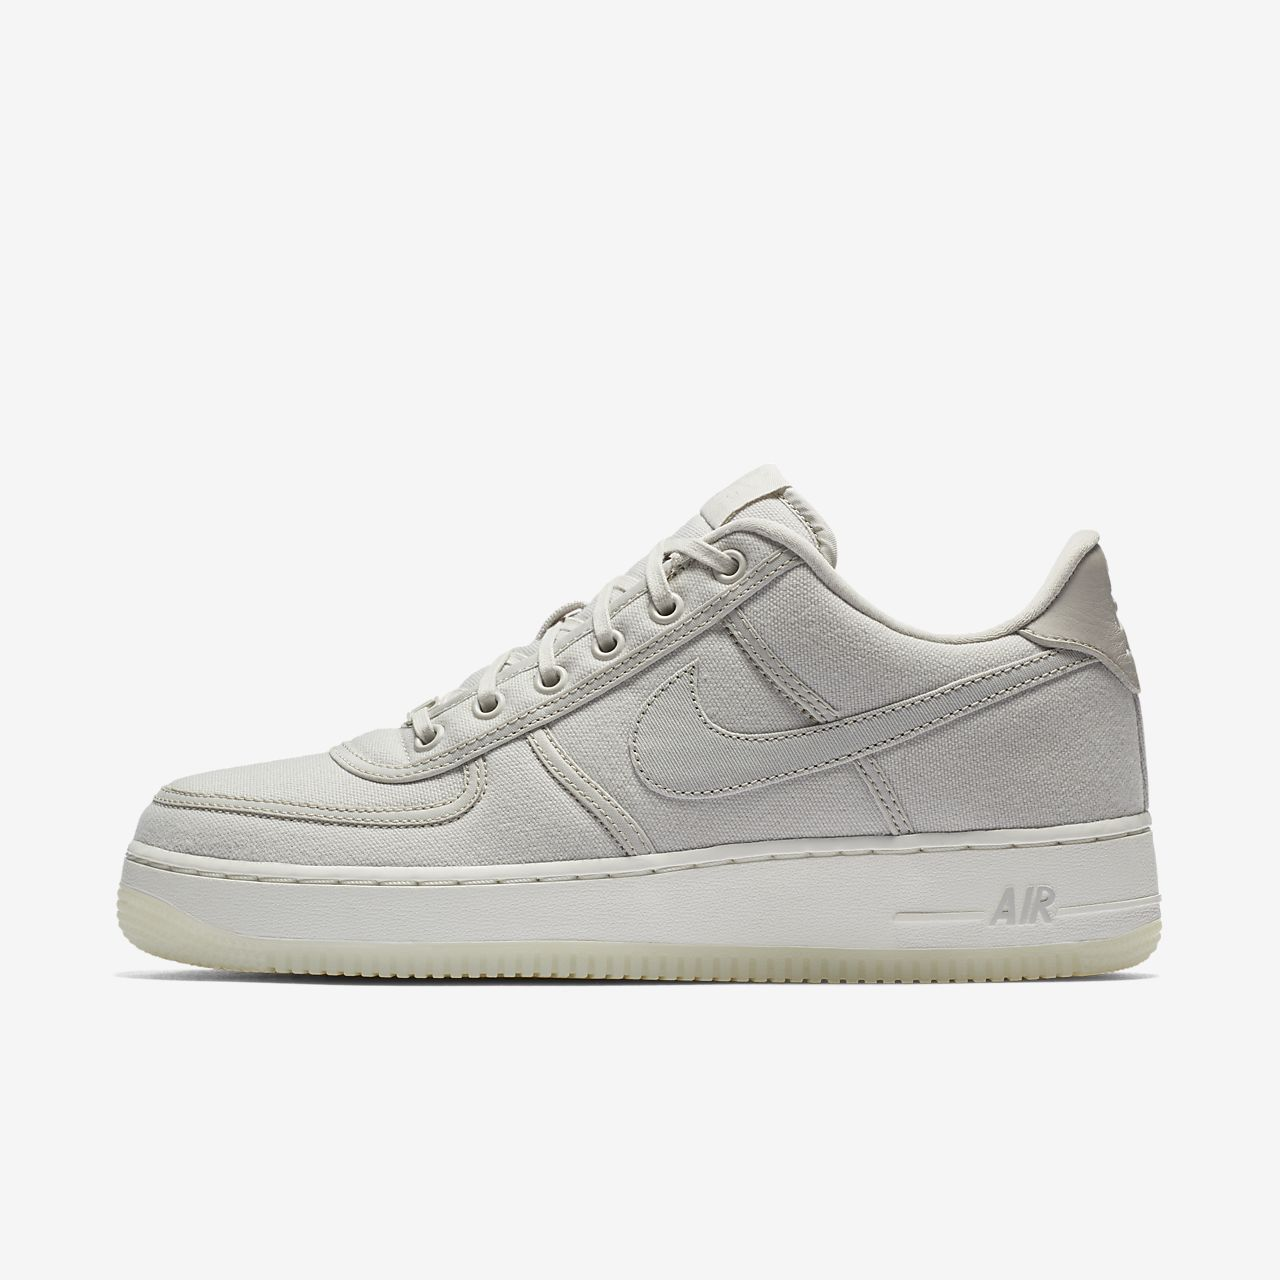 info for a9c5e 1d8ec Nike Air Force 1 Low Retro QS